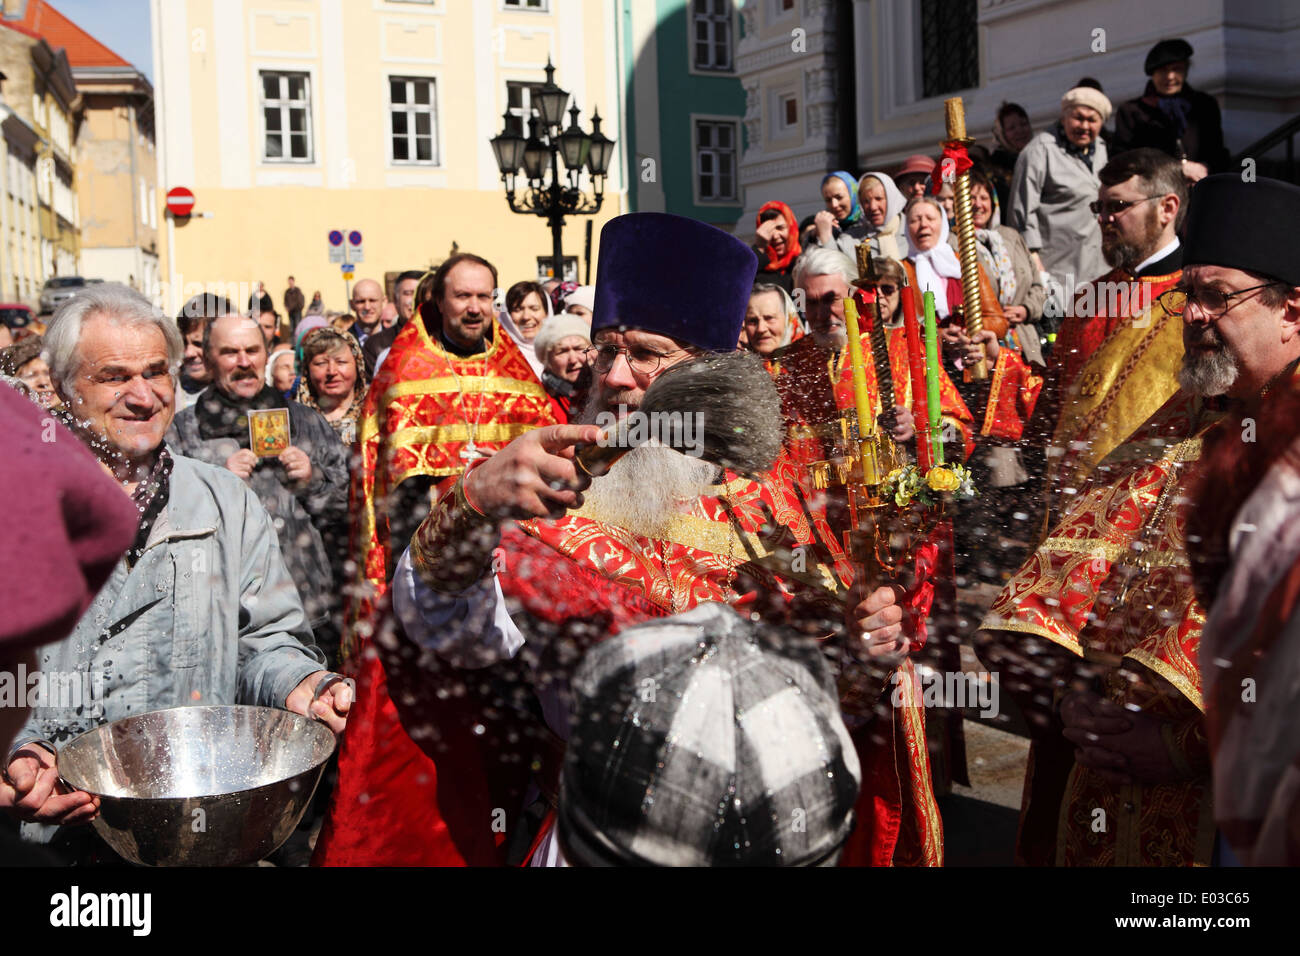 An Orthodox ceremony outside of the Alexander Nevsky Cathedral in Tallinn, Estonia. - Stock Image